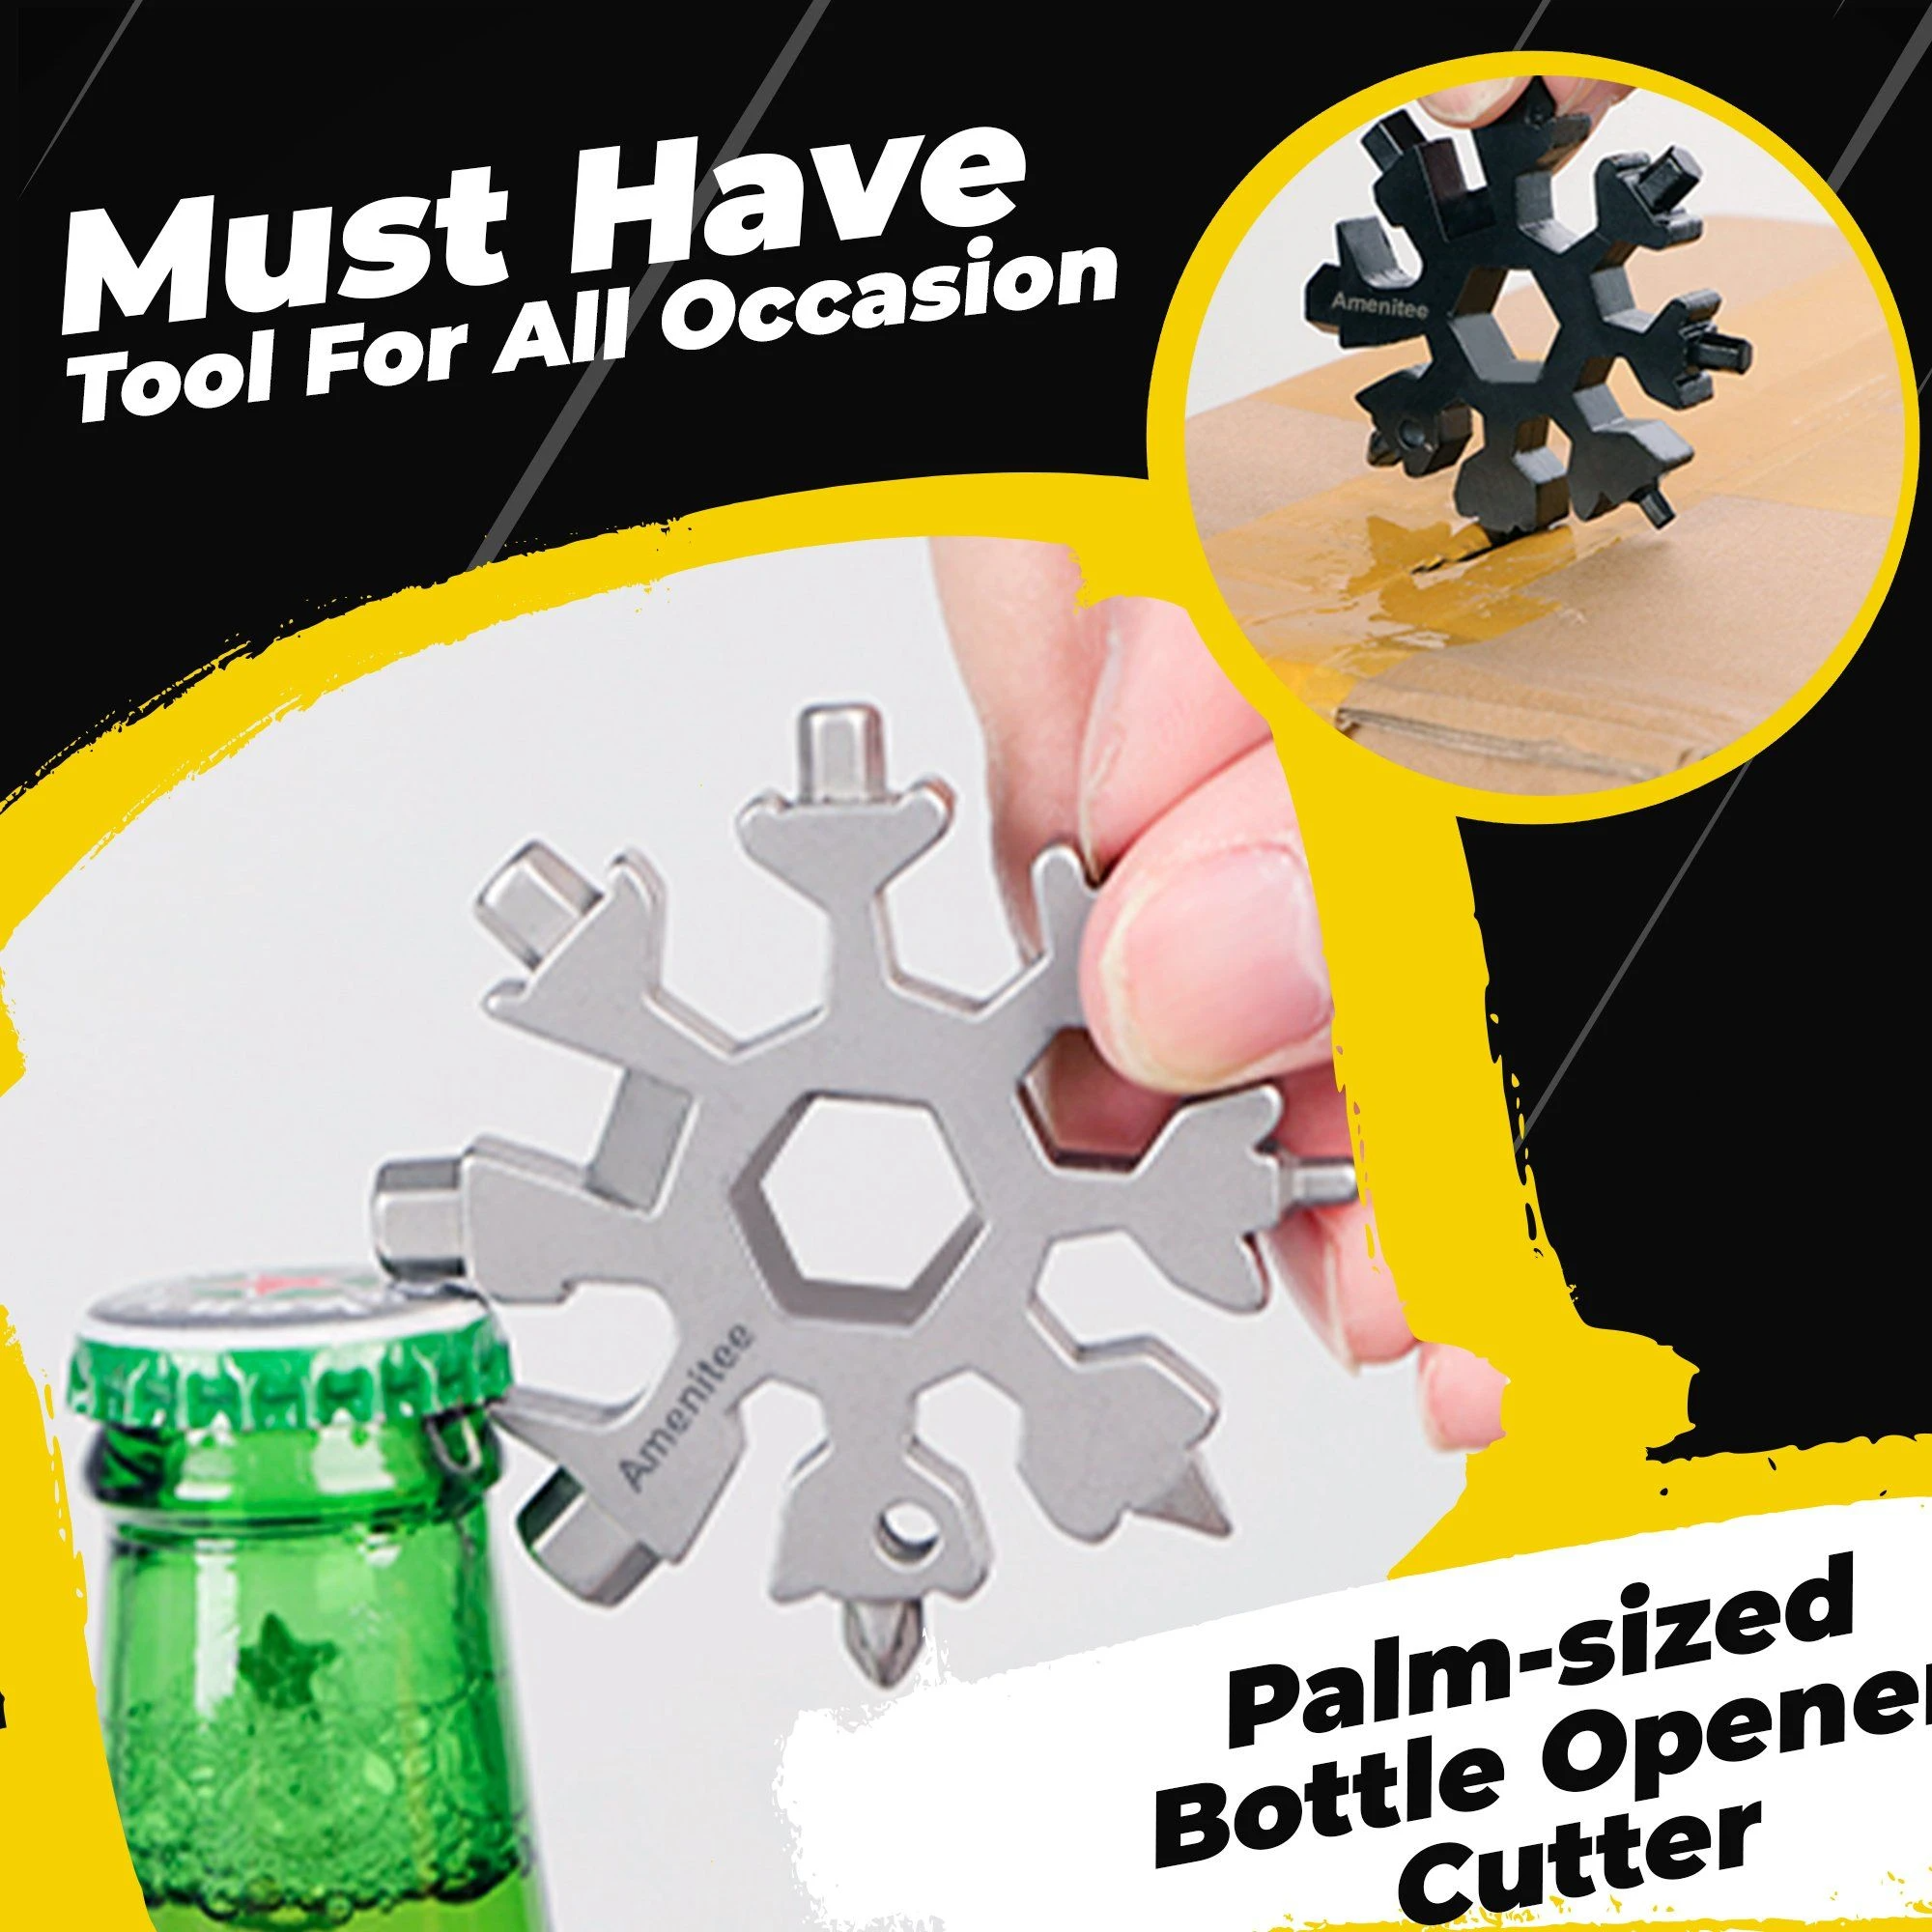 (Summer Flash Sale- 50% OFF) 18-in-1 Snowflake Multi-tool - Buy 2 get Extra 10% OFF